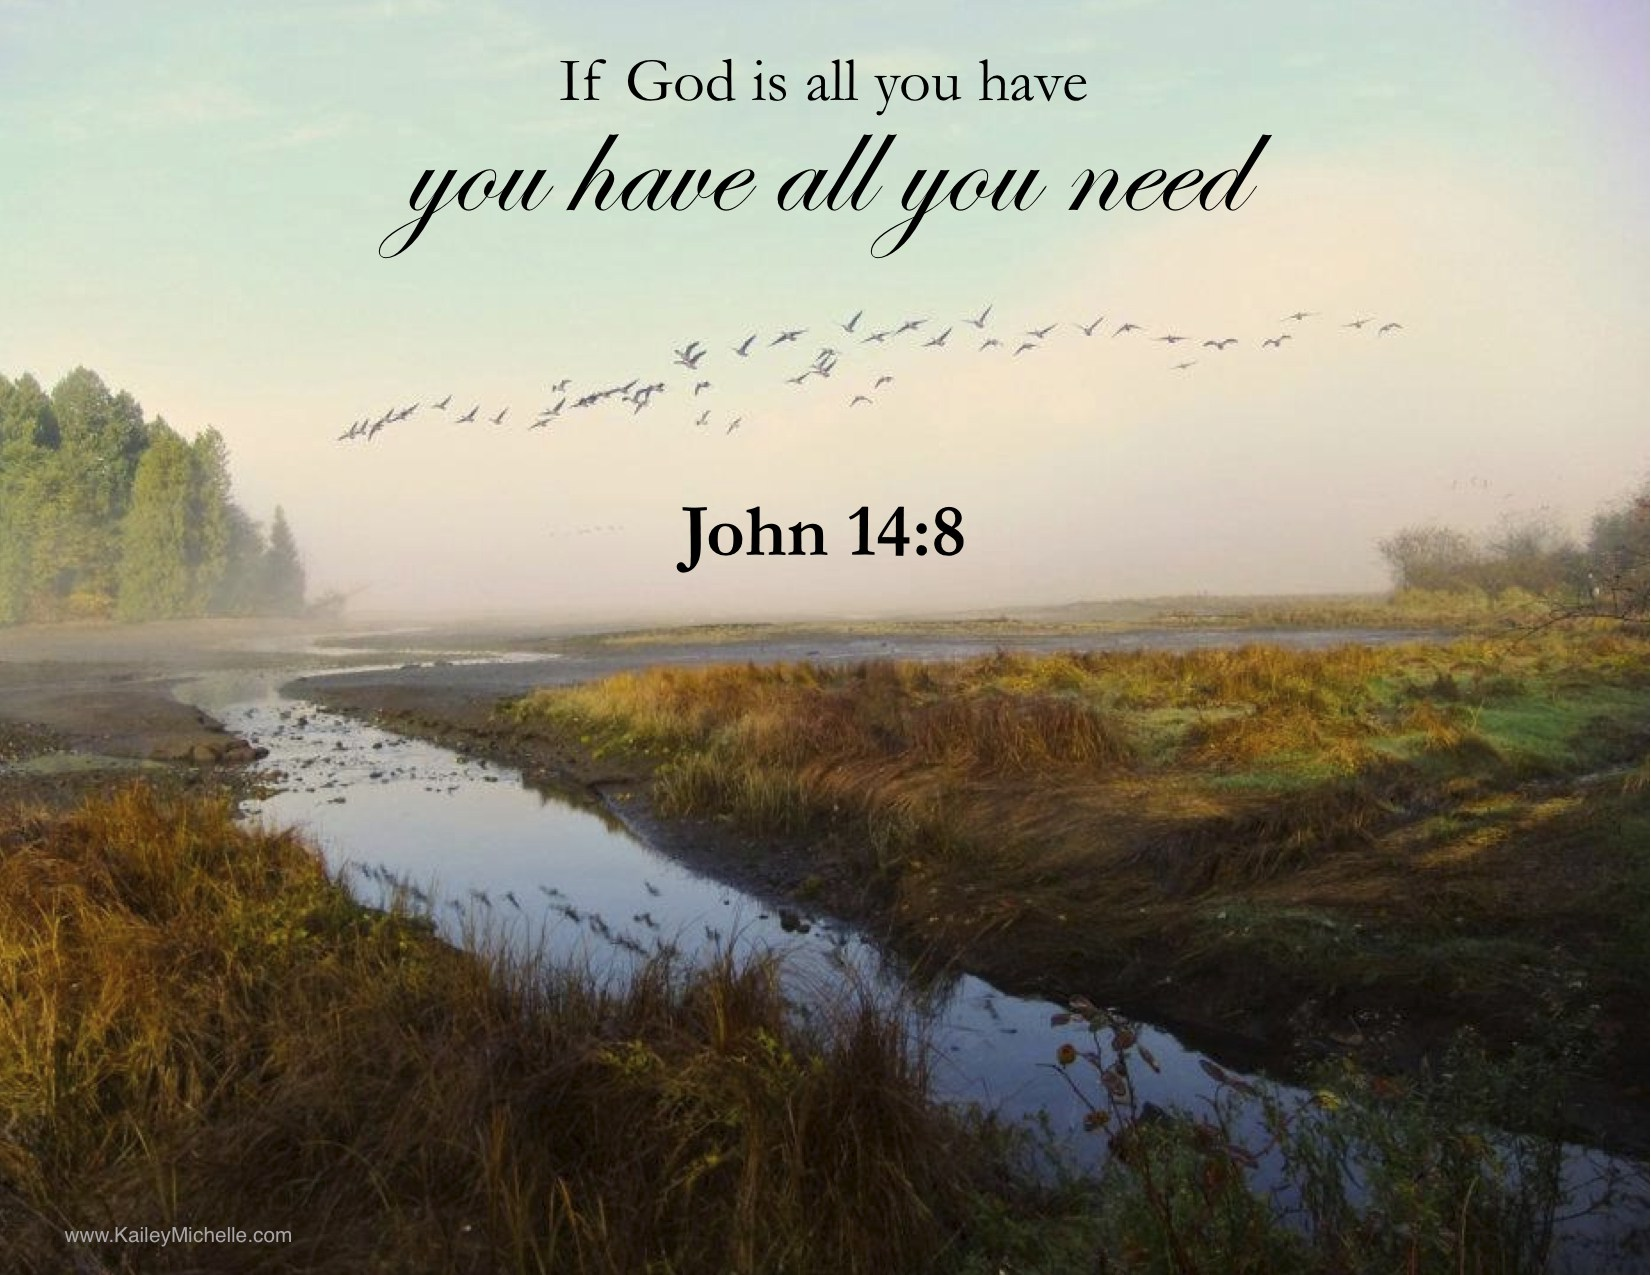 if-god-is-all-you-have-you-have-all-you-need